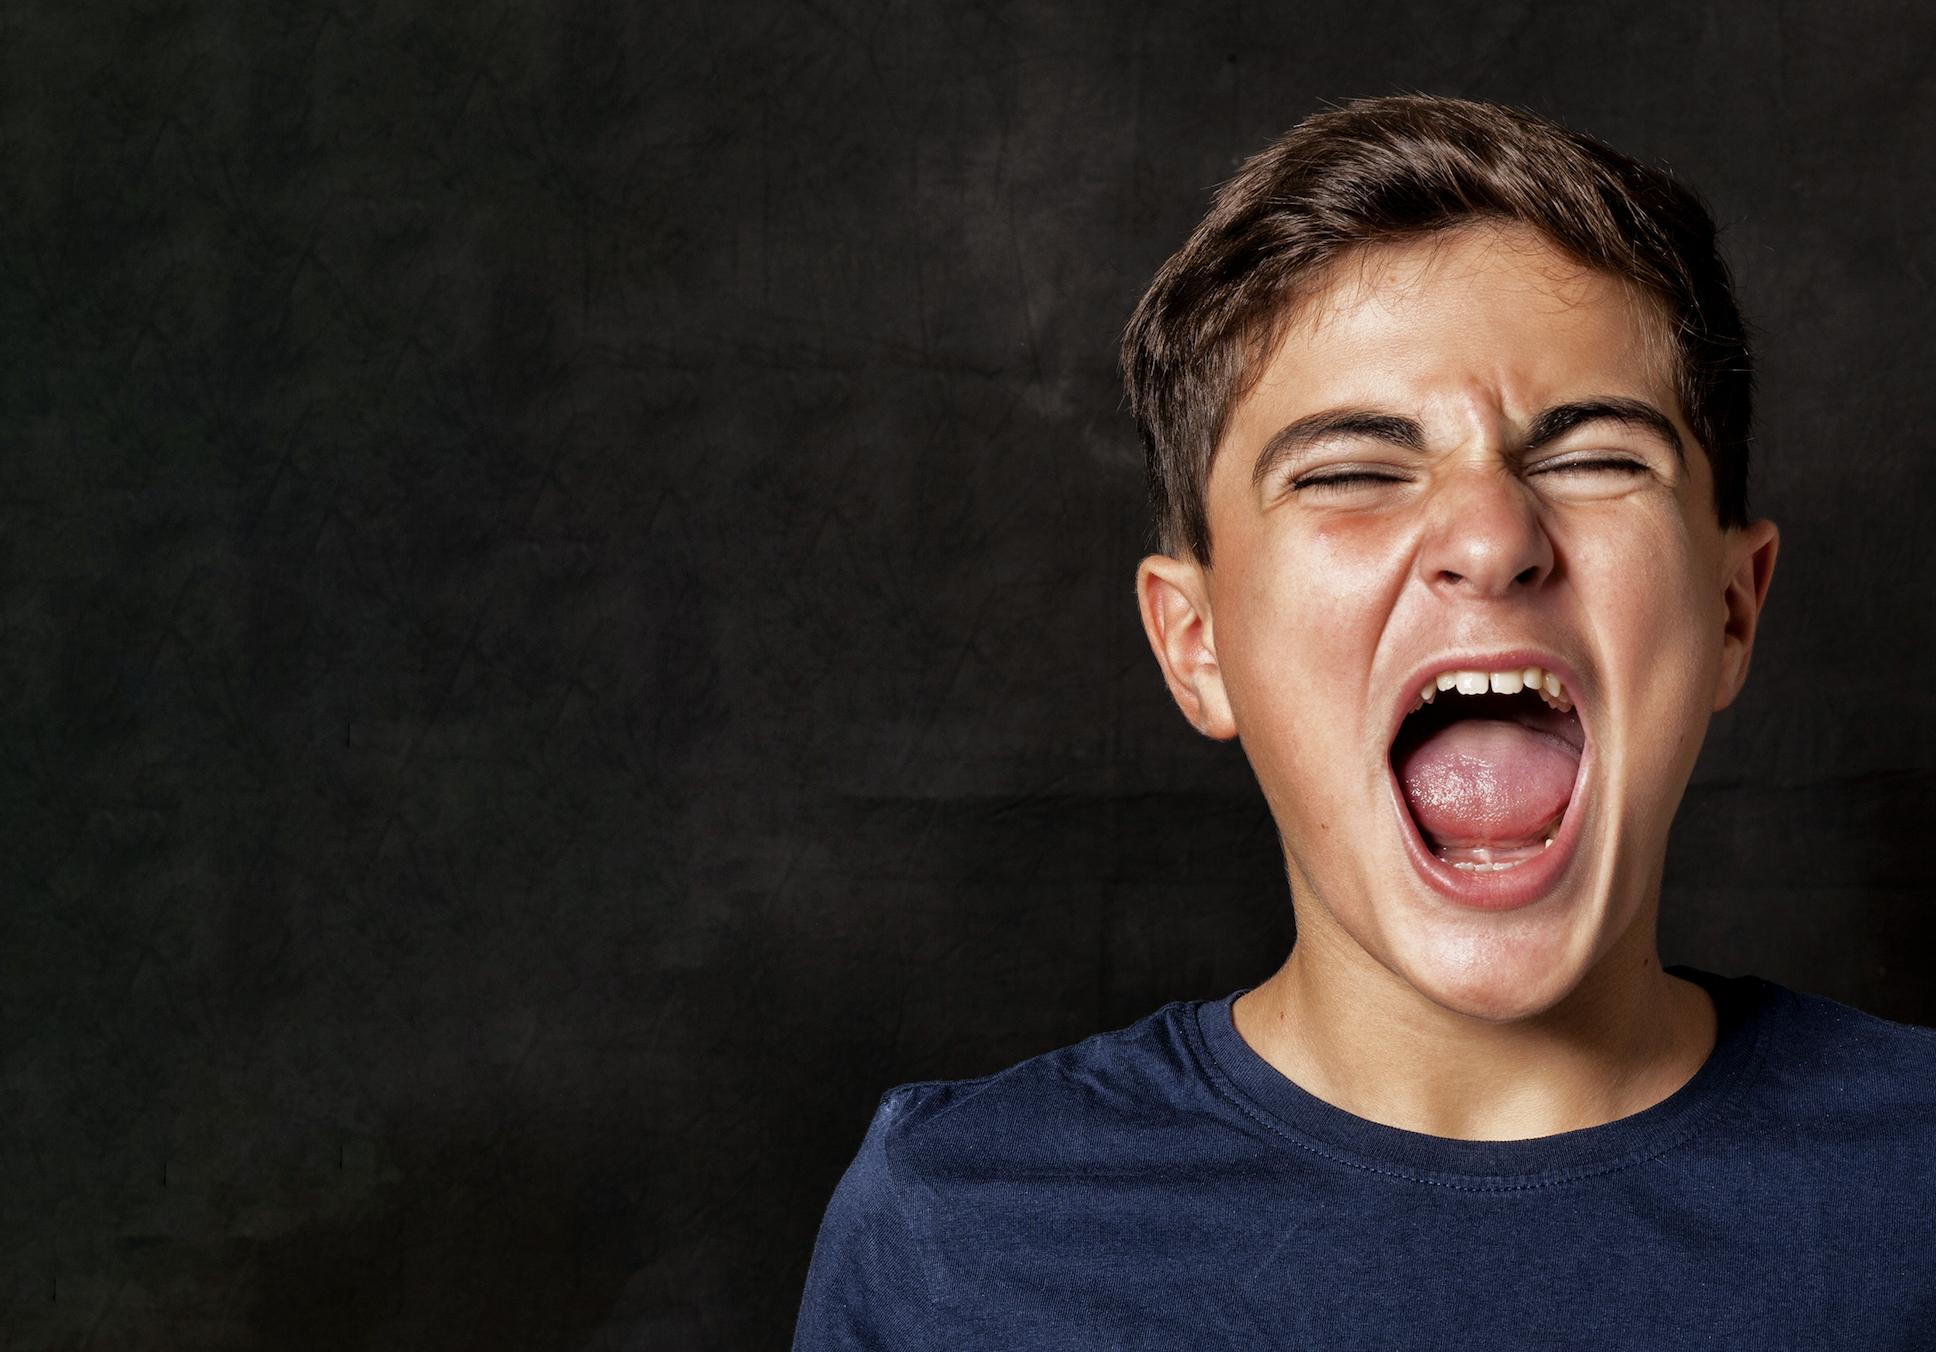 A young man screaming